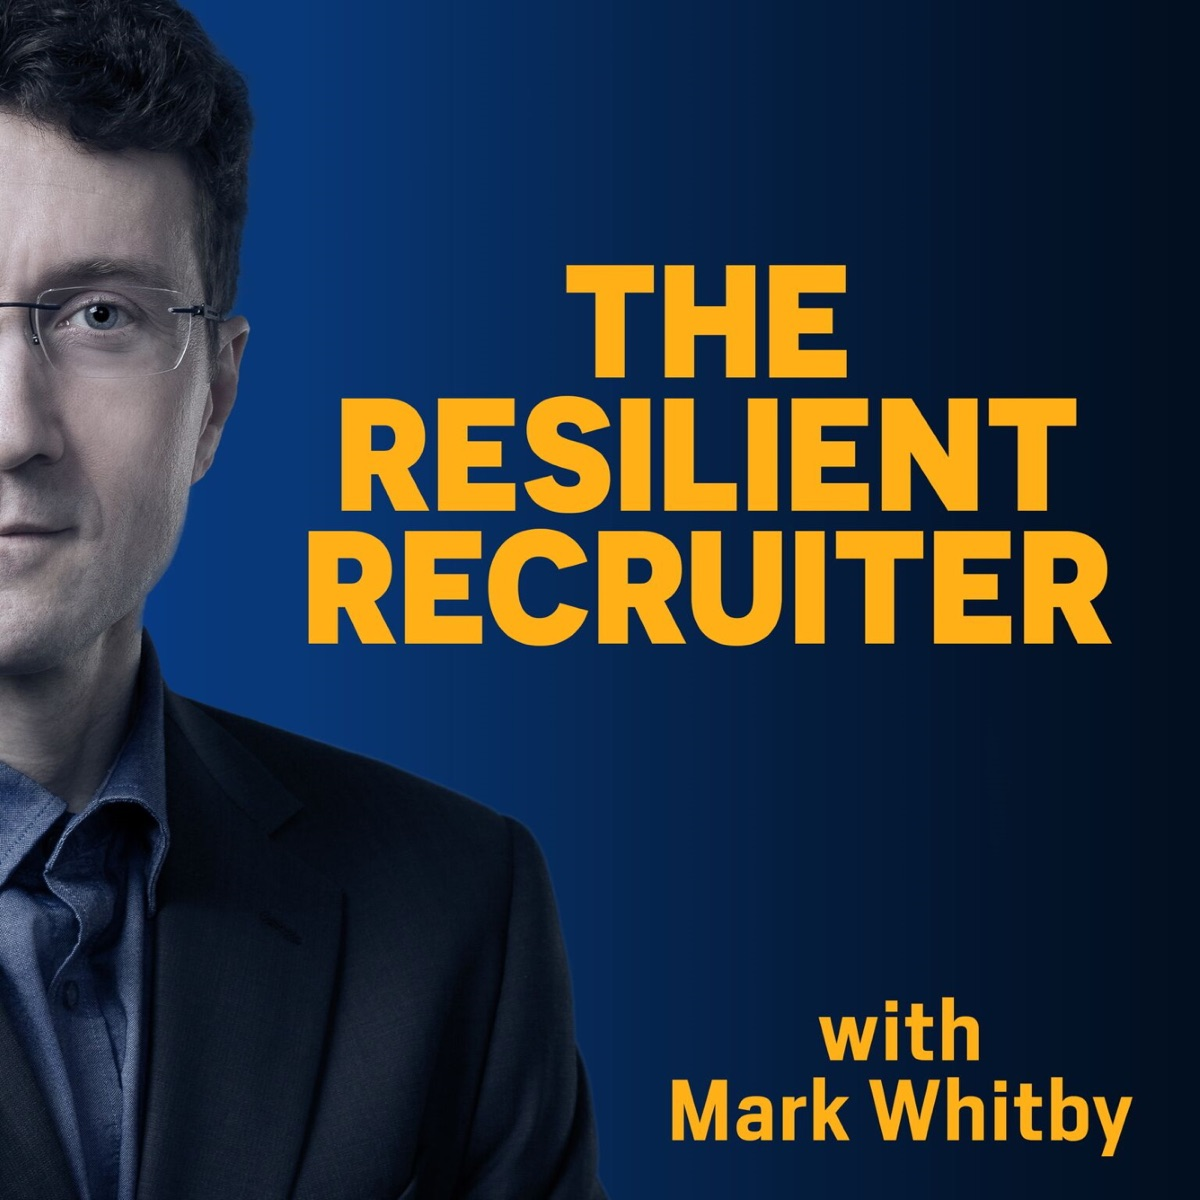 The Resilient Recruiter